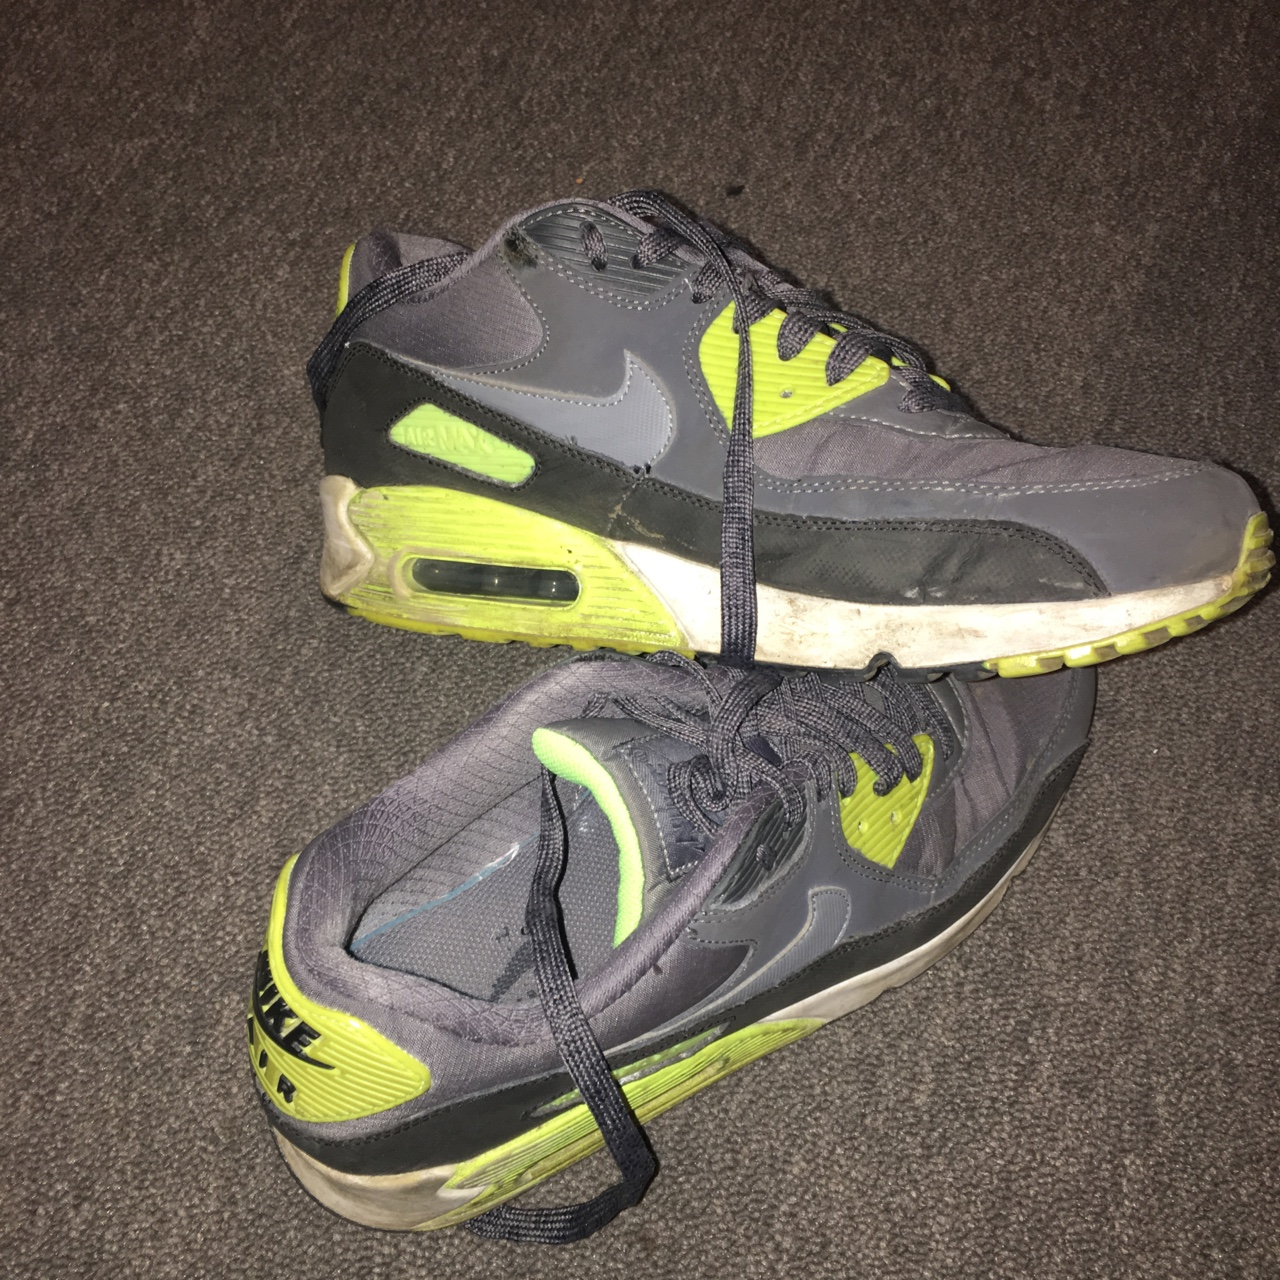 on sale dae20 acc8c Old Nike air max 90 need a wash but in good... - Depop